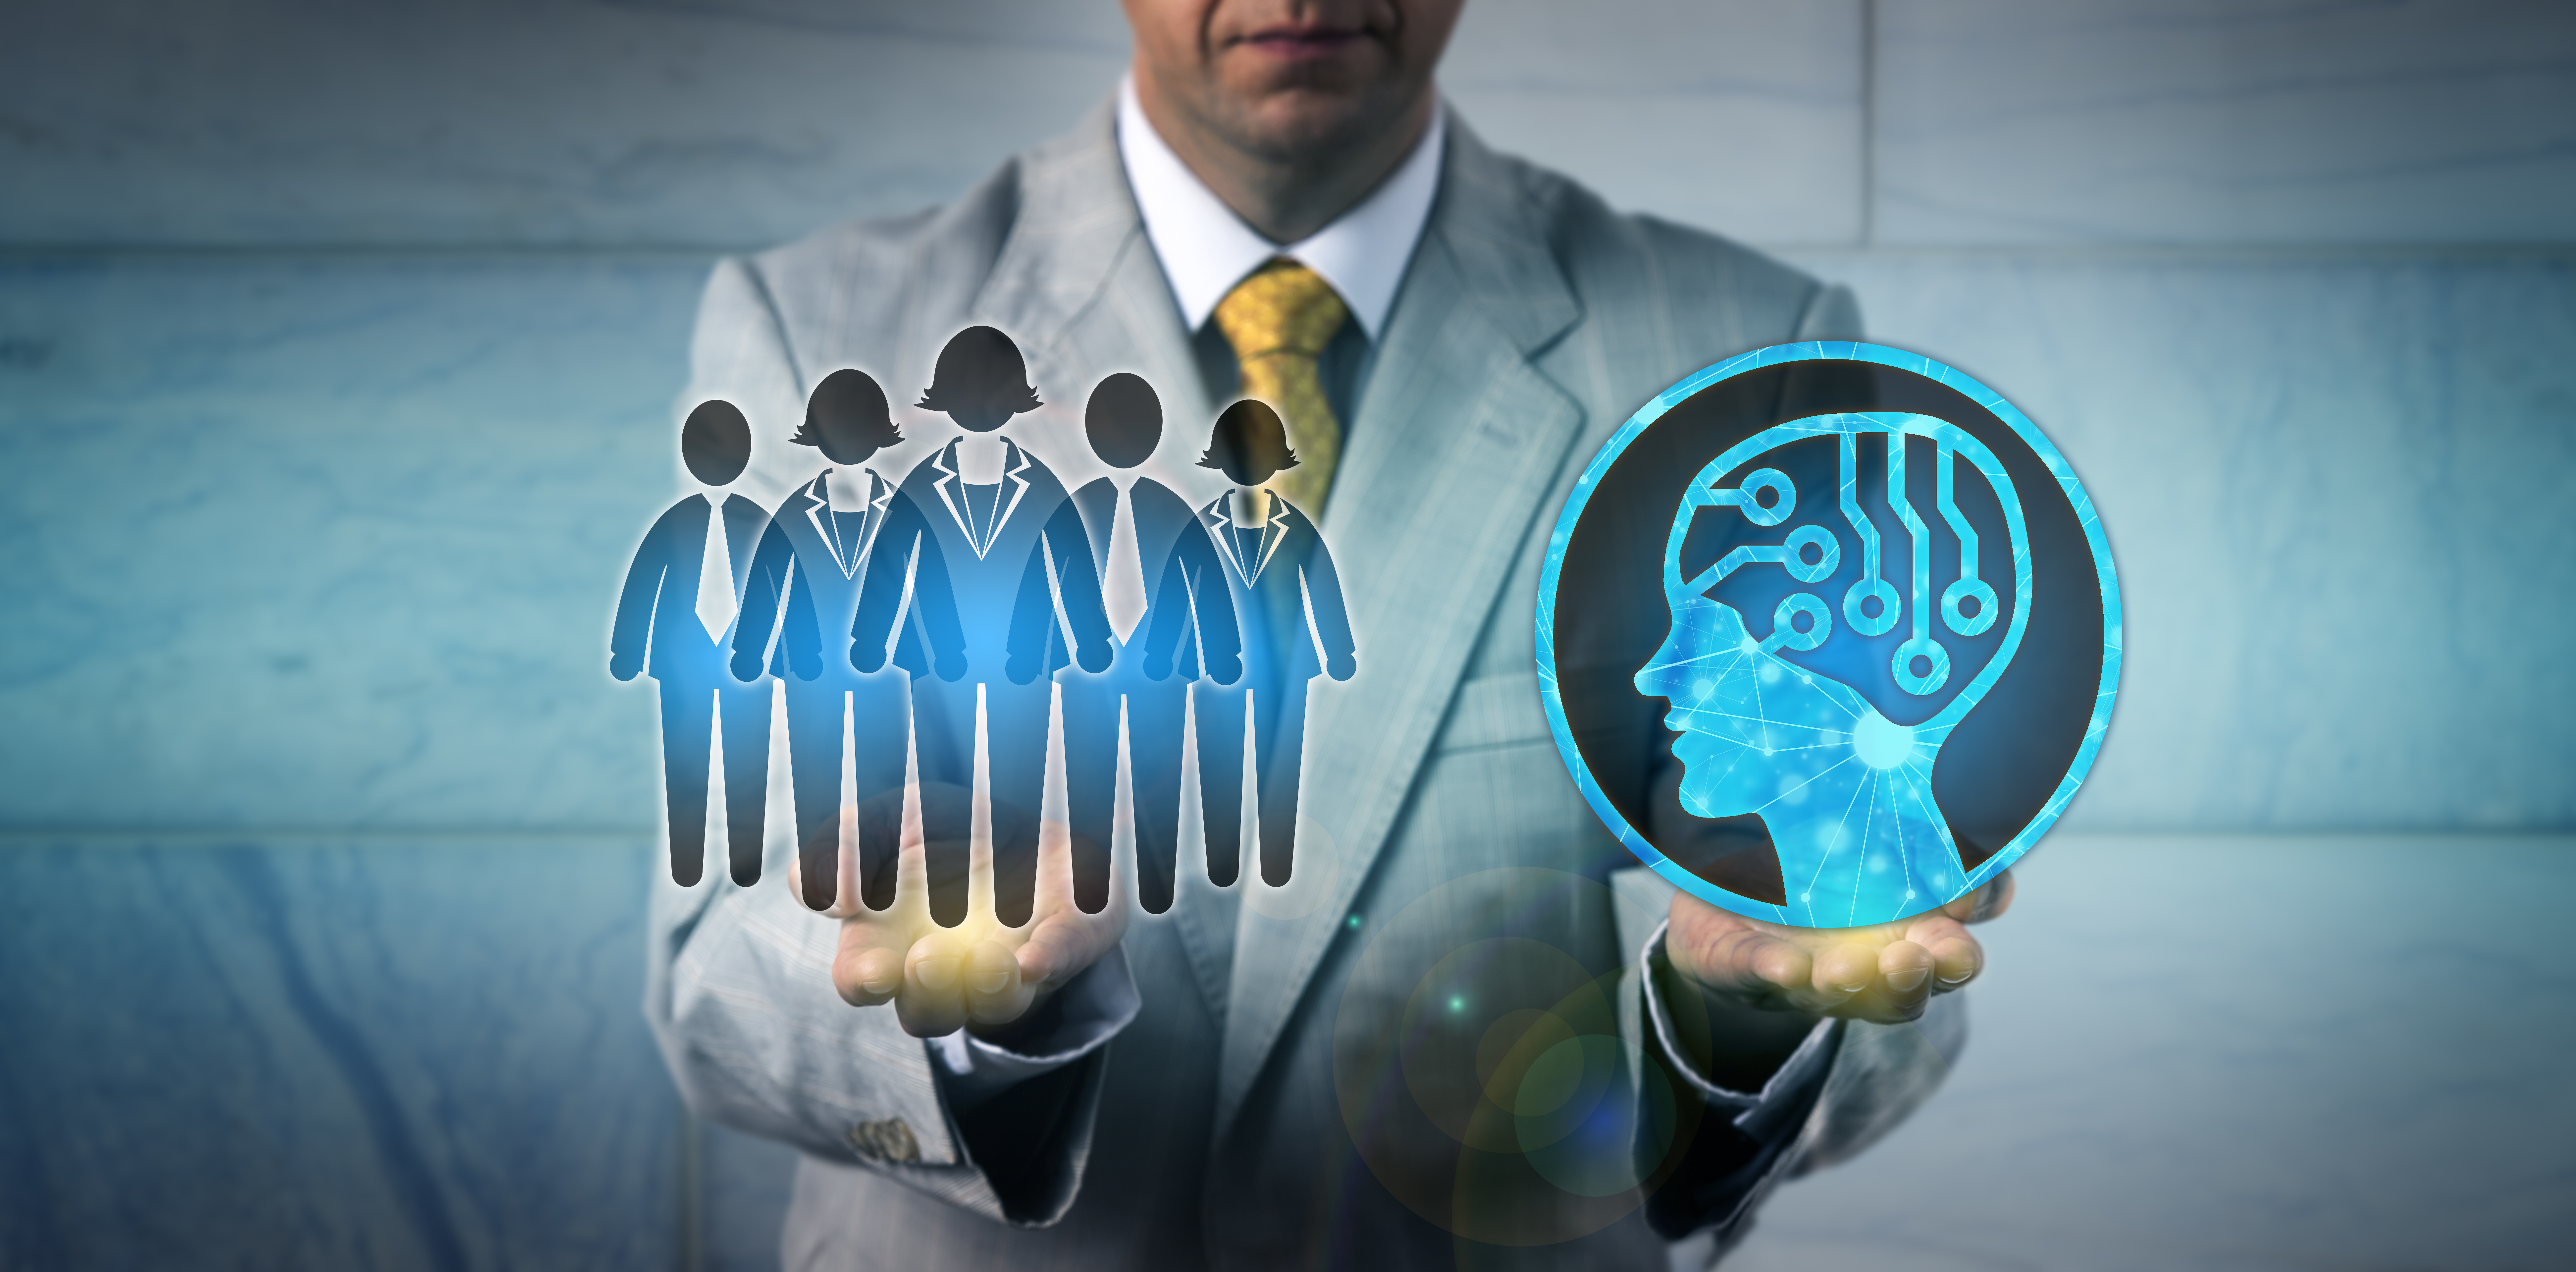 AI for talent acquisition improves personalization